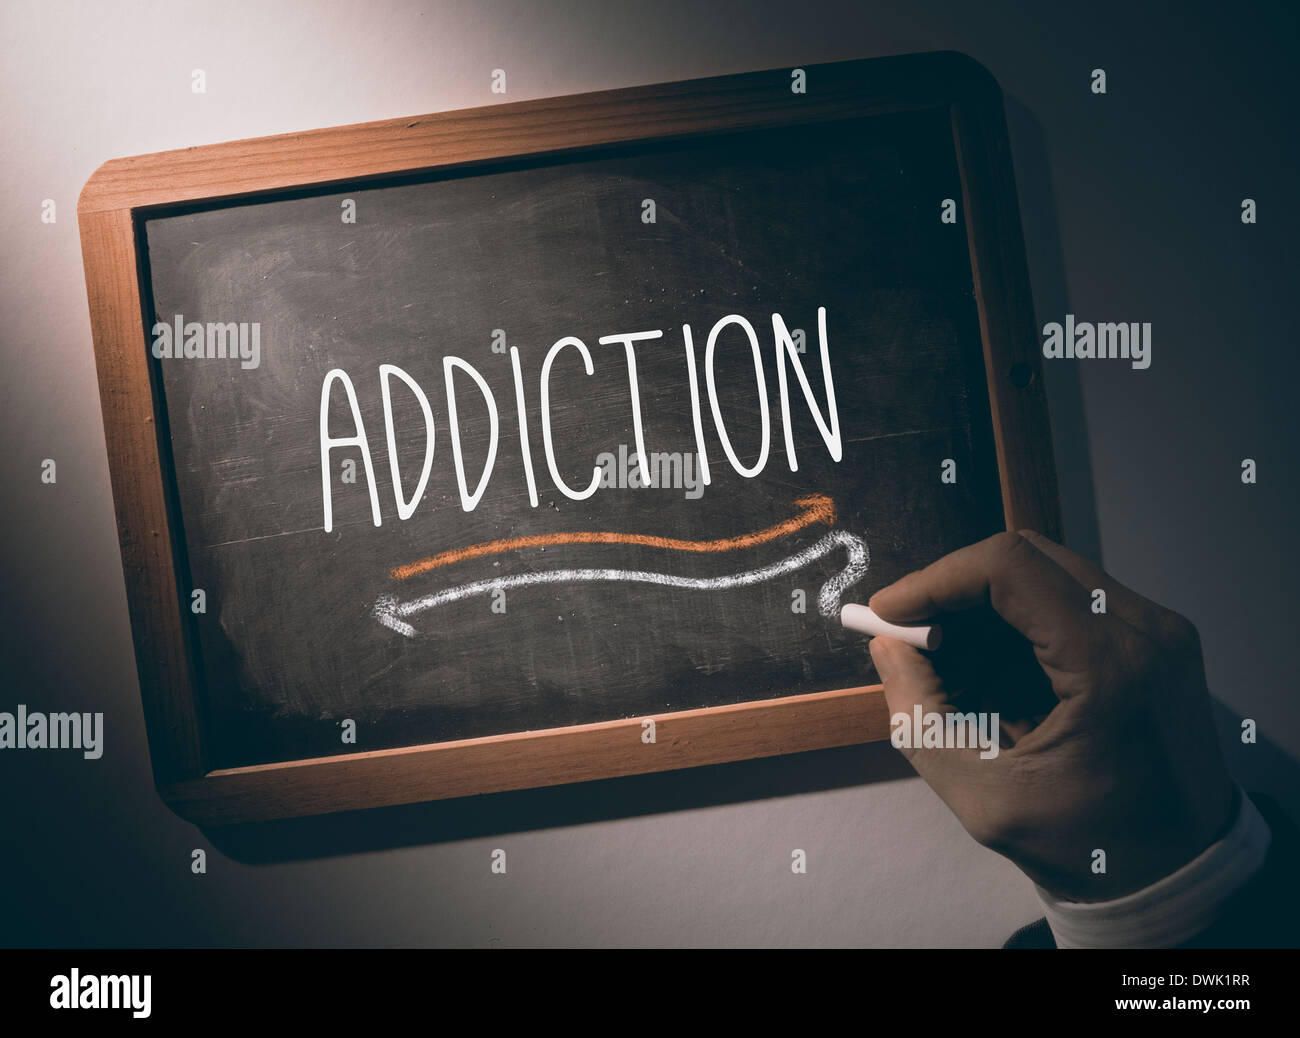 Hand writing Addiction on chalkboard - Stock Image